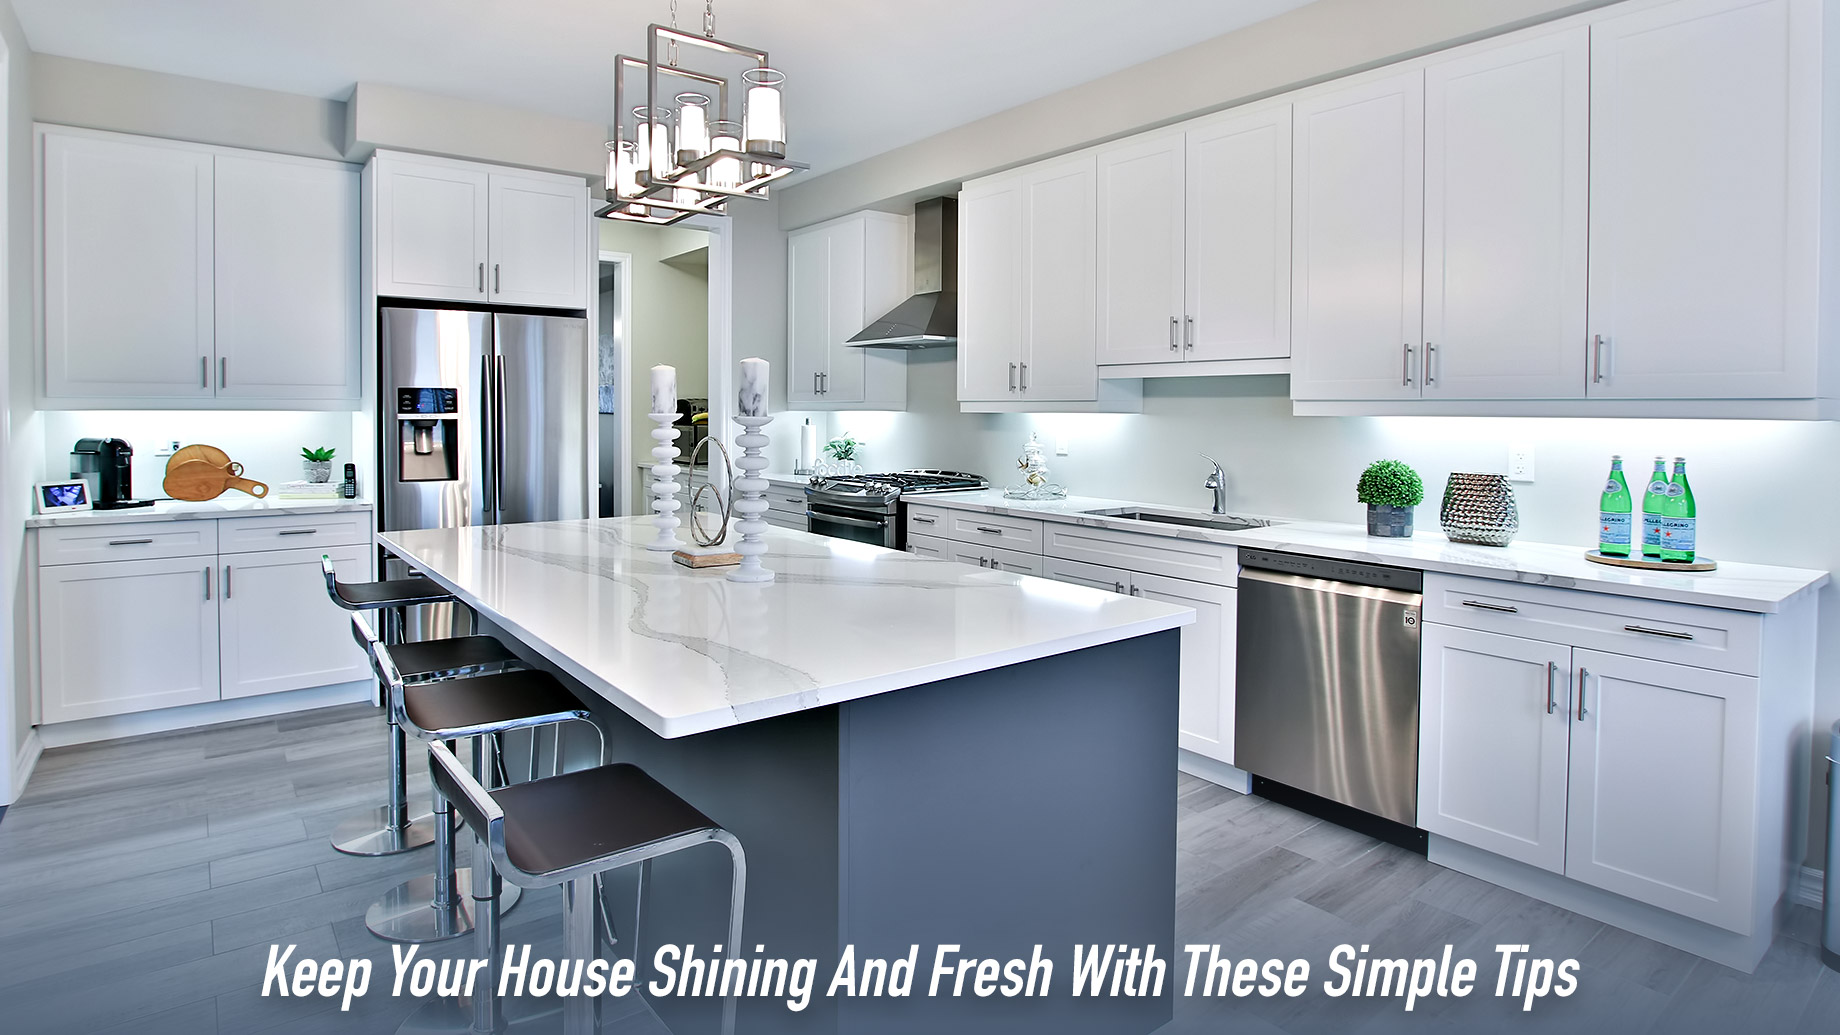 Keep Your House Shining And Fresh With These Simple Tips